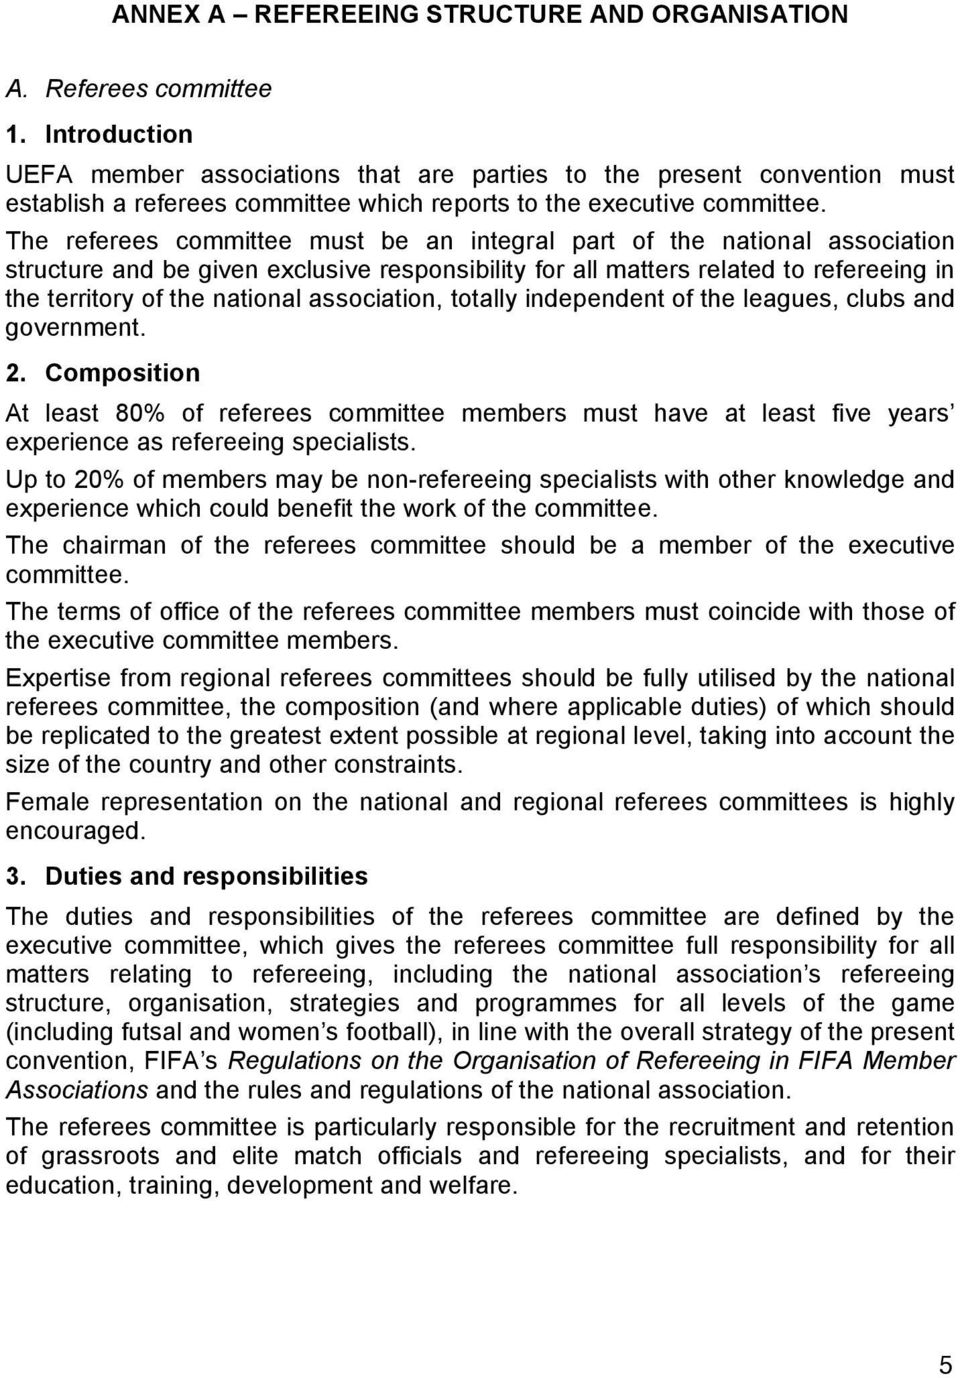 The referees committee must be an integral part of the national association structure and be given exclusive responsibility for all matters related to refereeing in the territory of the national